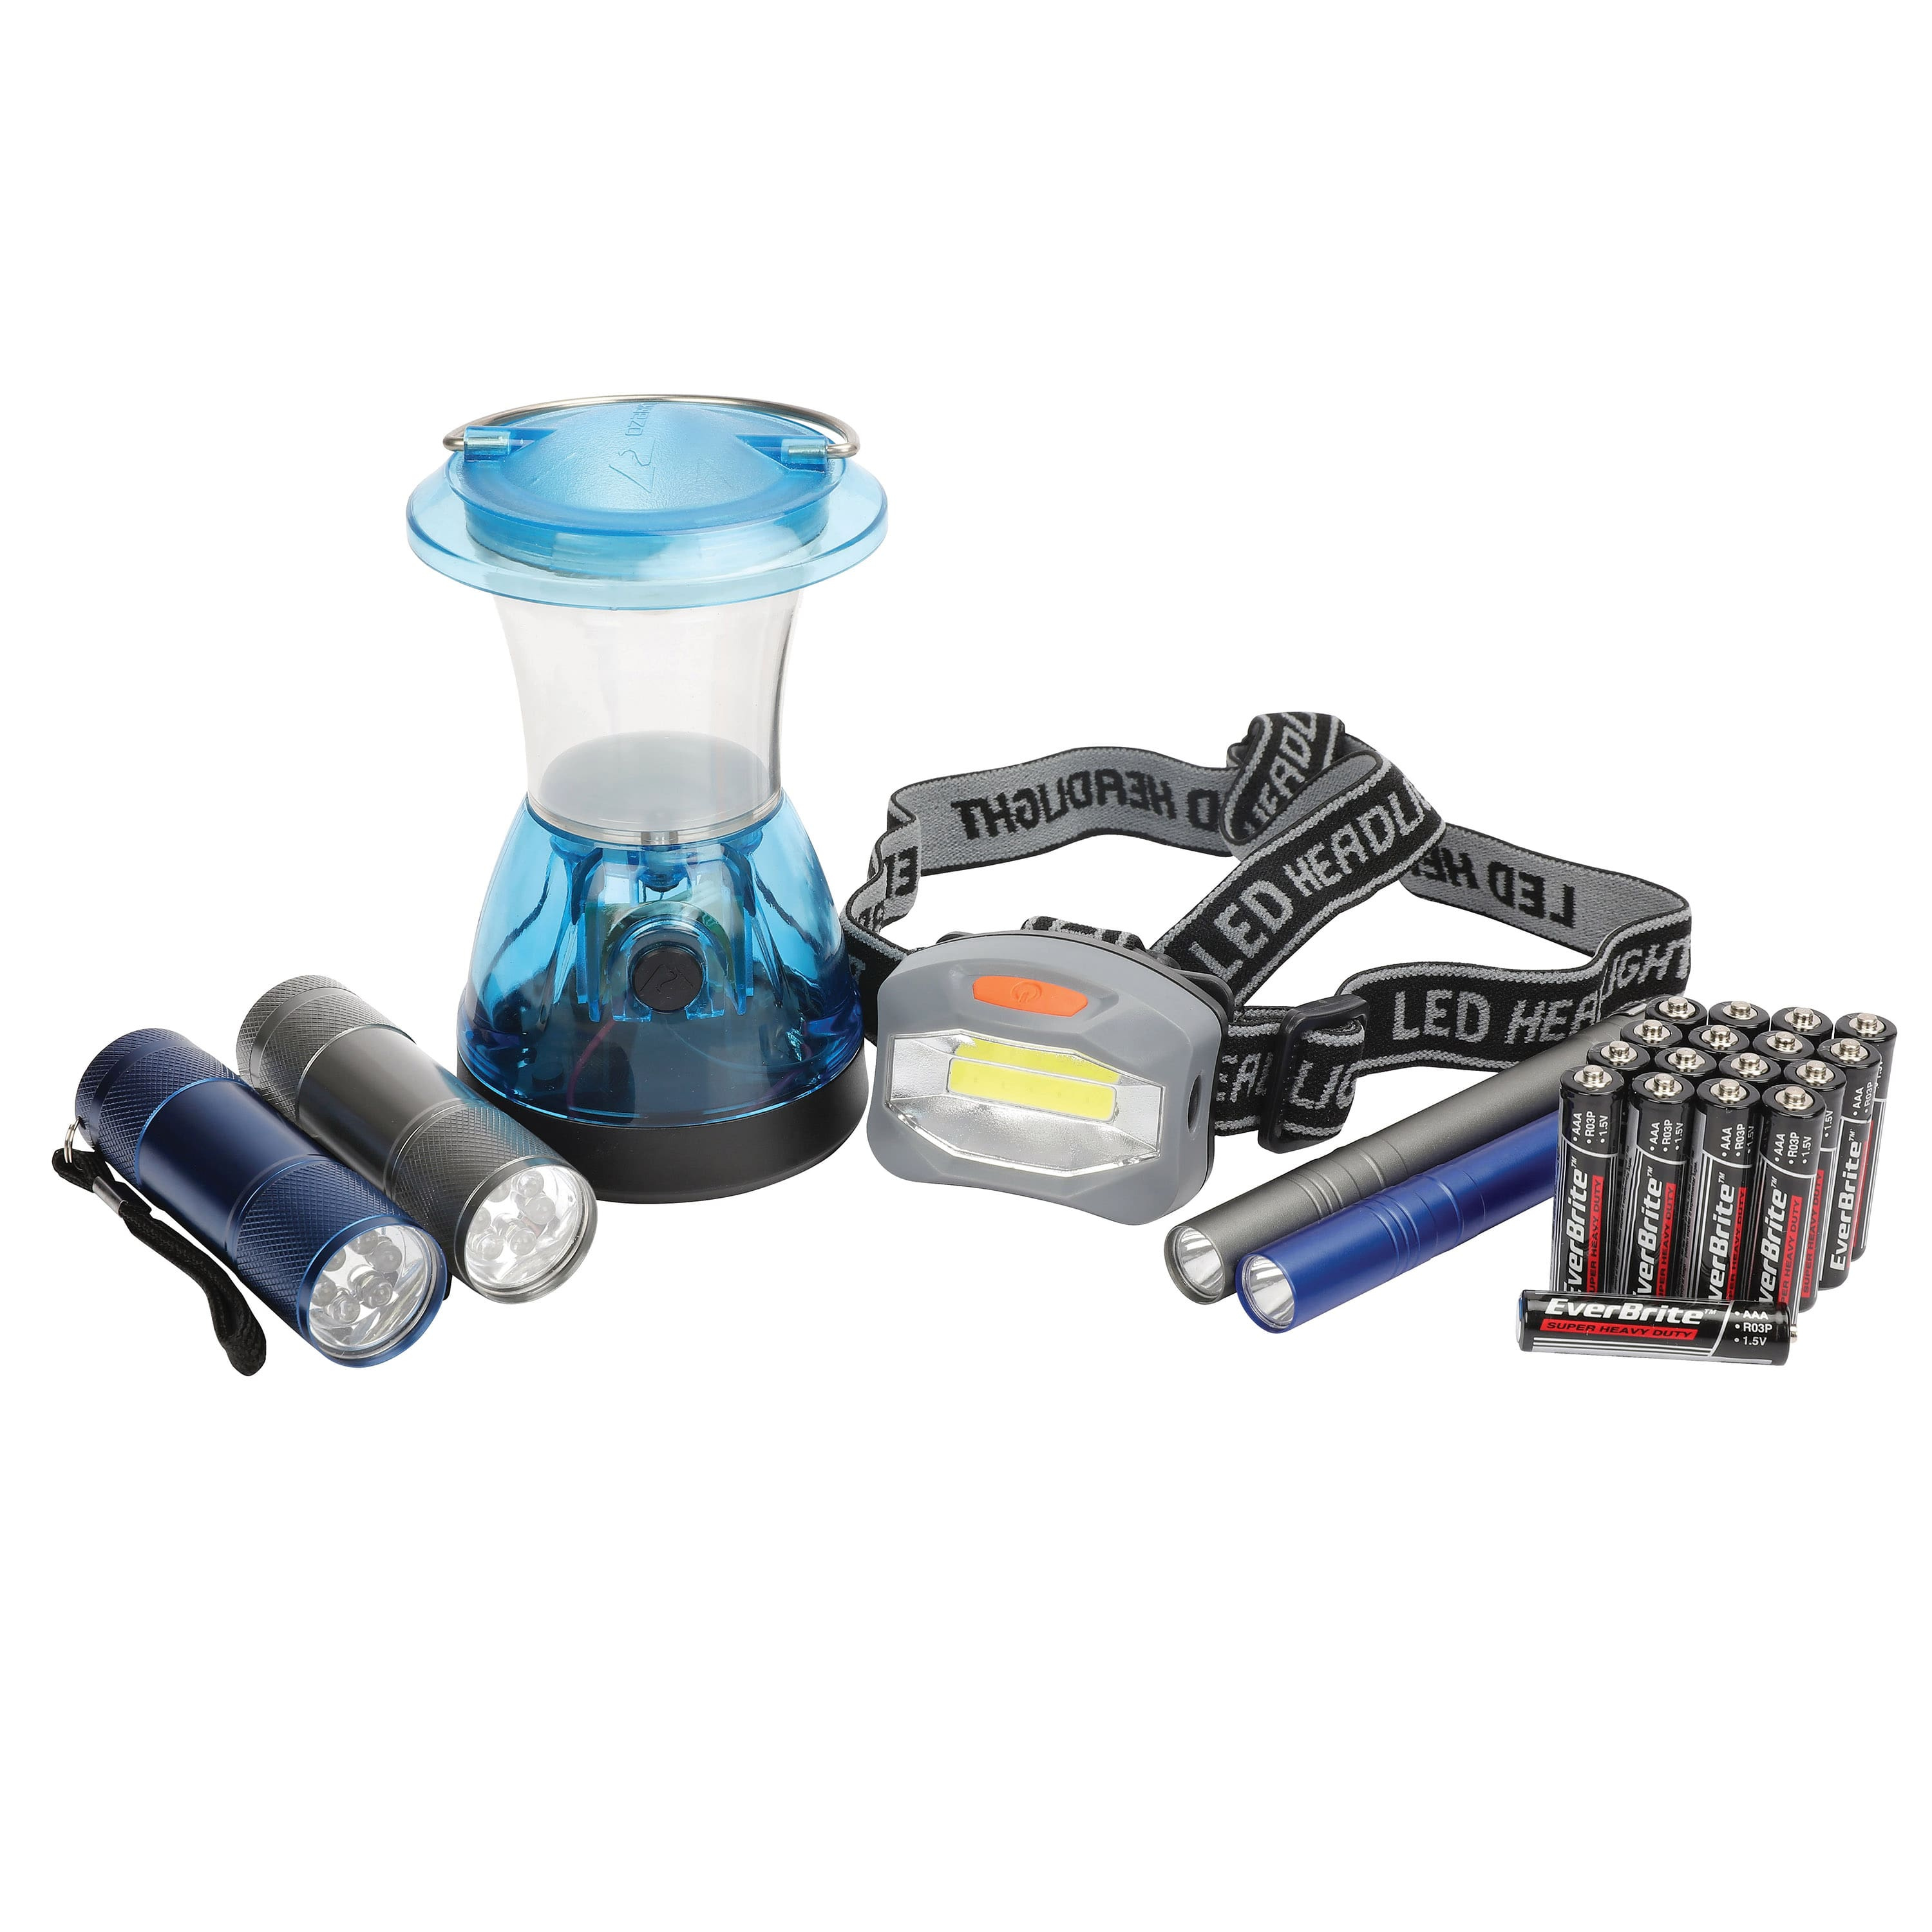 6-Pc Ozark Trail Light Set (2x Flashlight, 2x Penlight, Headlamp + Lantern)